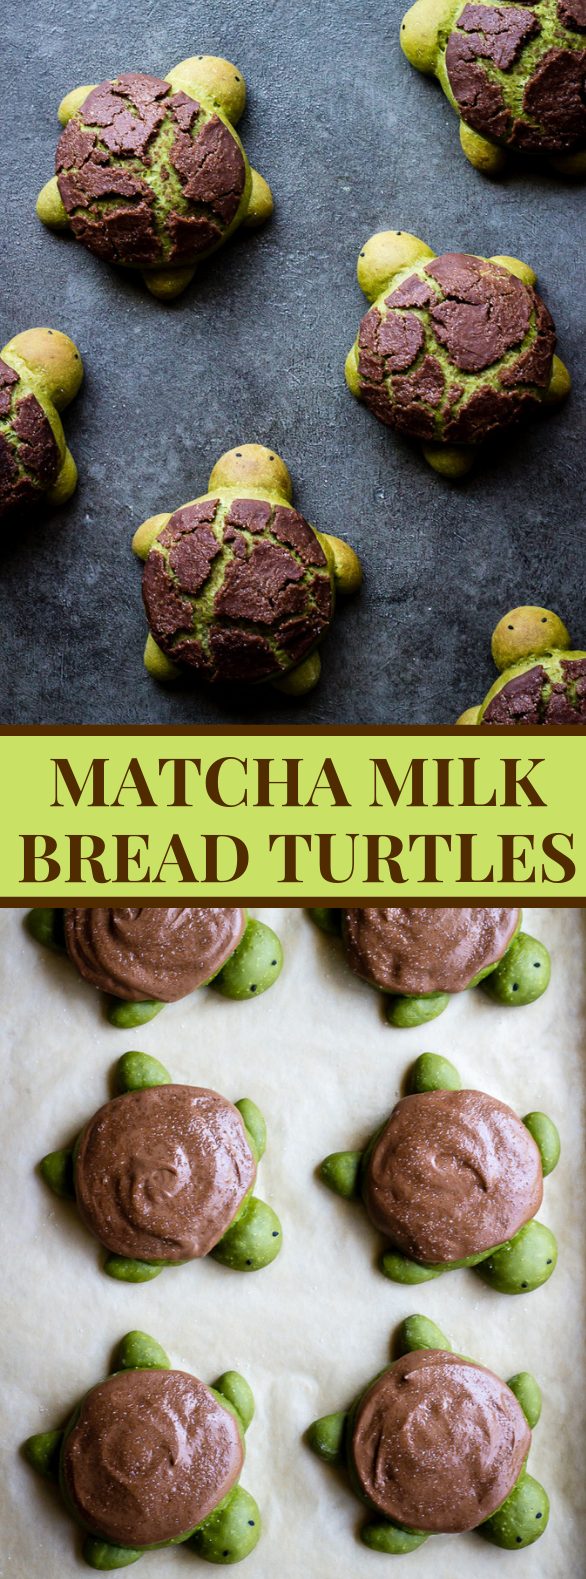 MATCHA MILK BREAD TURTLES #dessert #cookies